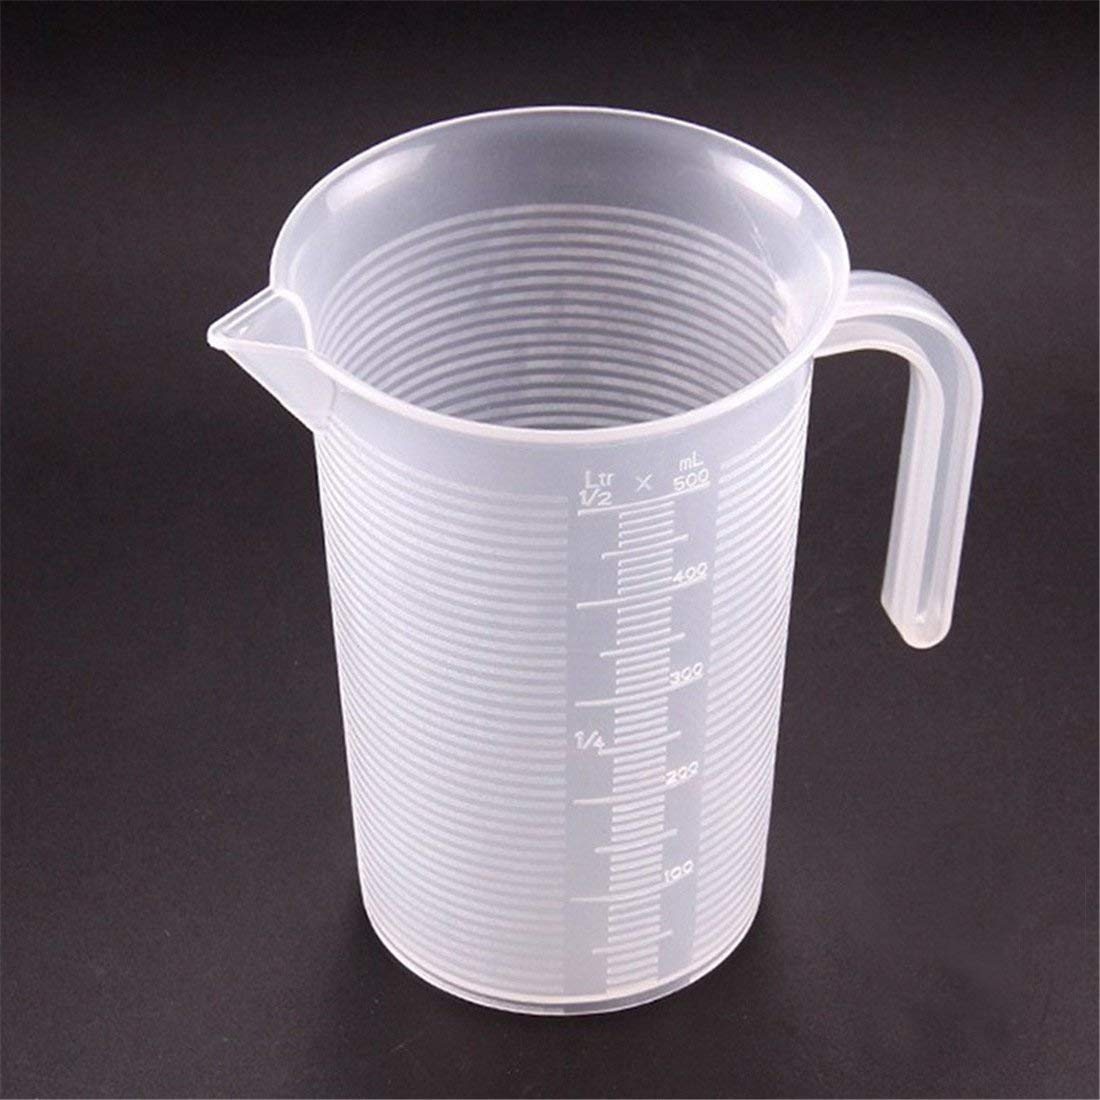 Transparent Plastic Liquid Measuring Cup with Spout Clear ML OZ Measuring Tools for Kitchen Baking Cooking,100ml 250ml 500ml 1000ml